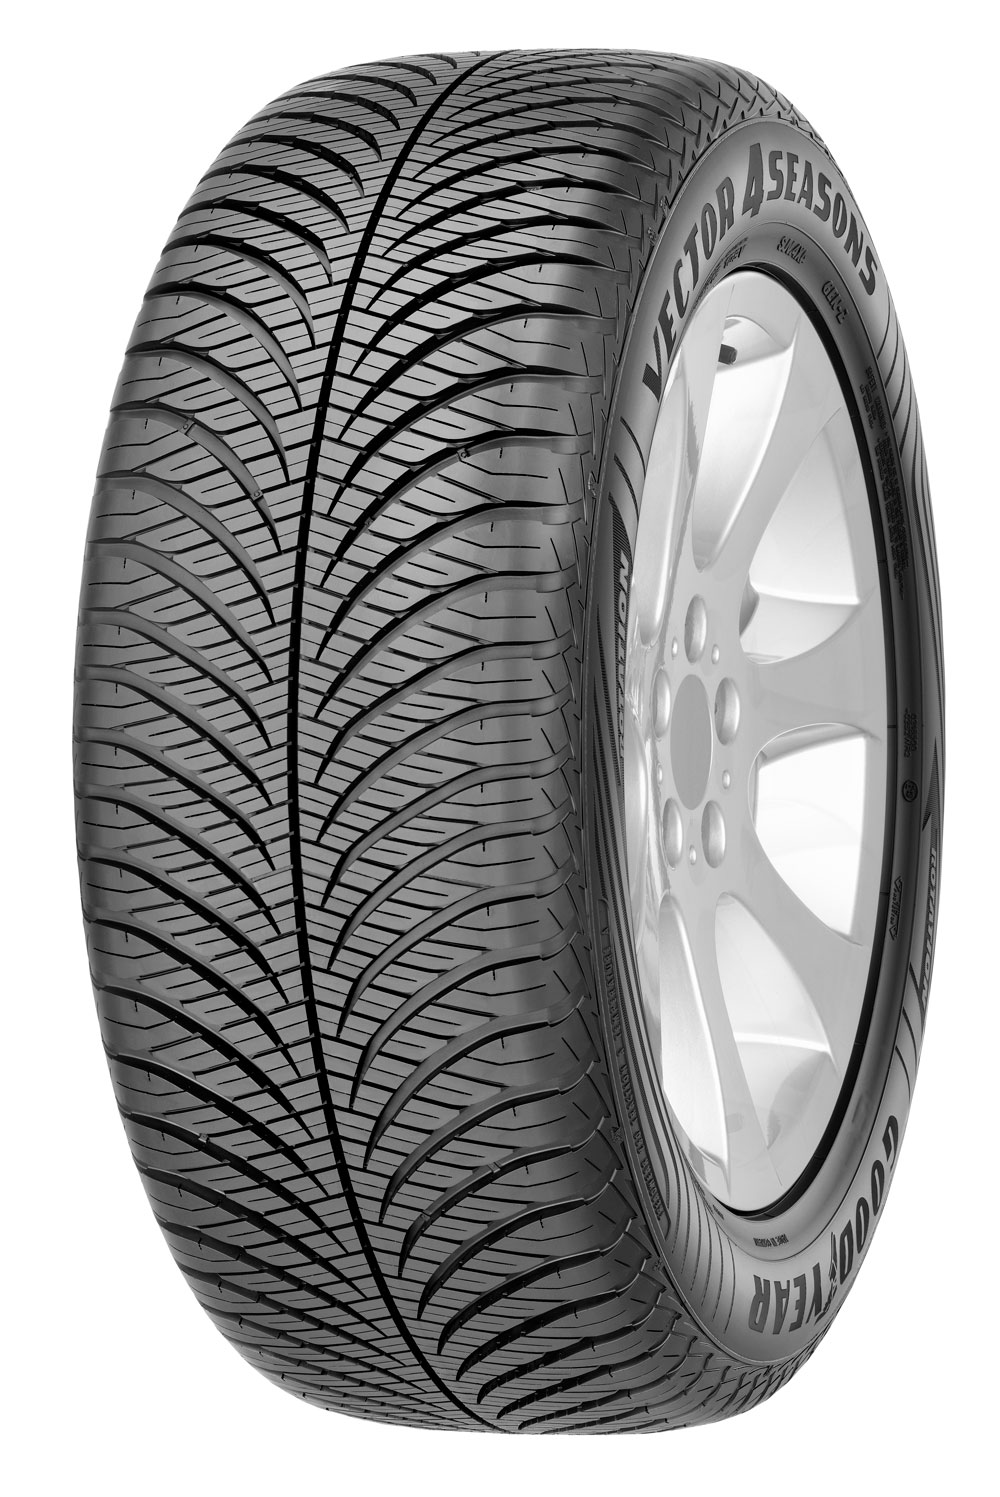 Anvelopa all seasons GOODYEAR Vector 4Seasons G2 185/65 R15 88T